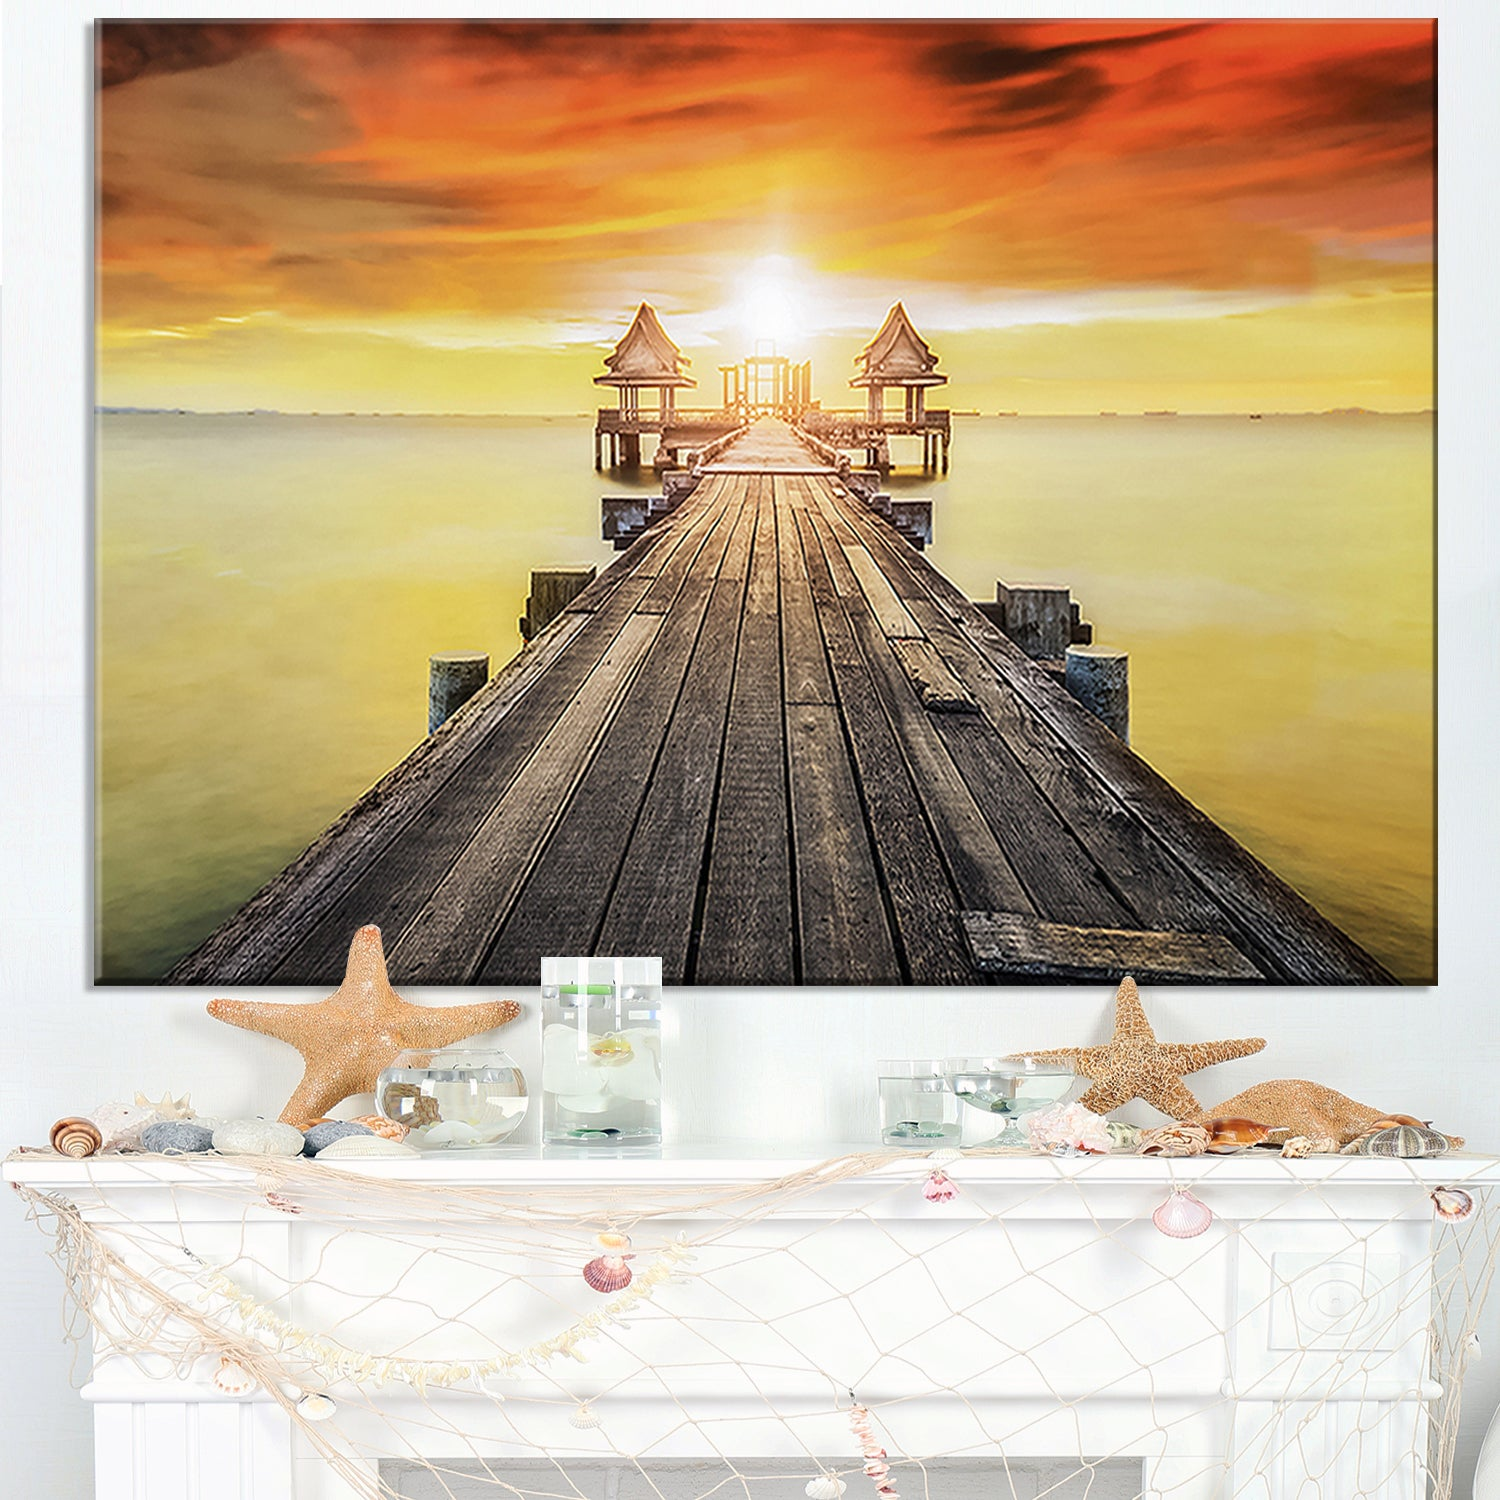 Huge Wooden Pier into Yellow Sun - Sea Pier and Bridge Glossy Metal ...